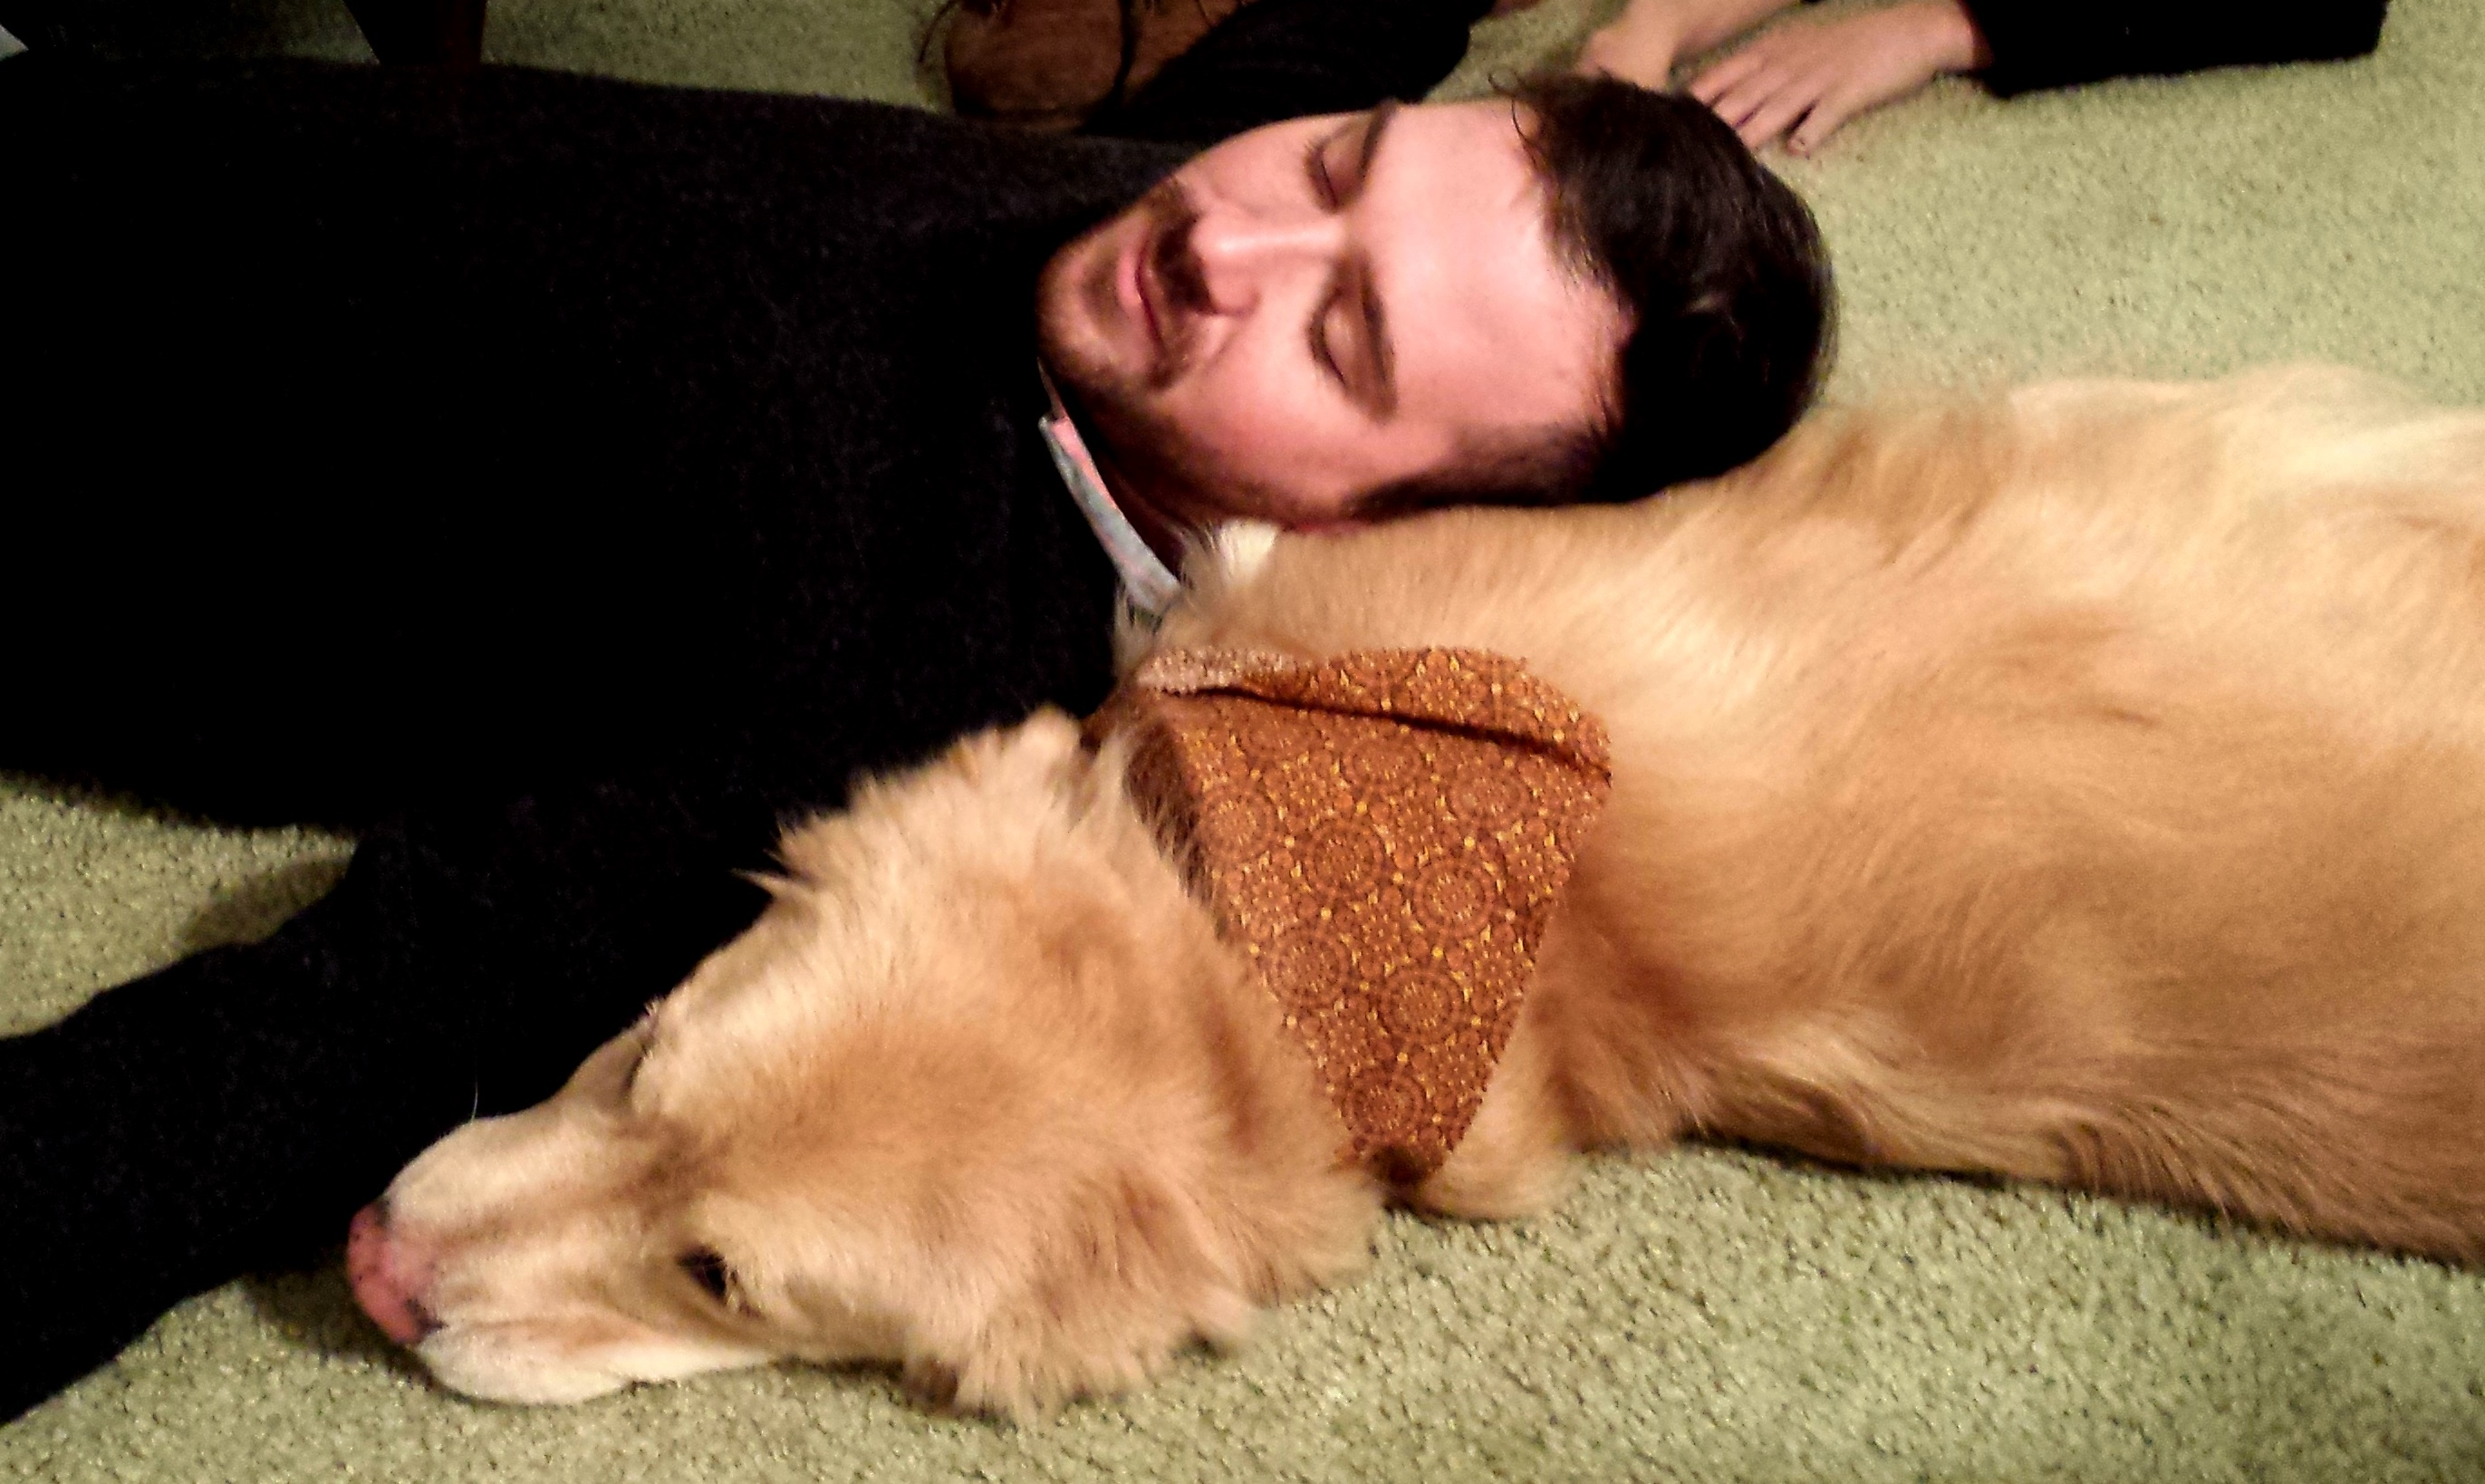 Young man has head resting on golden retriever's shoulder